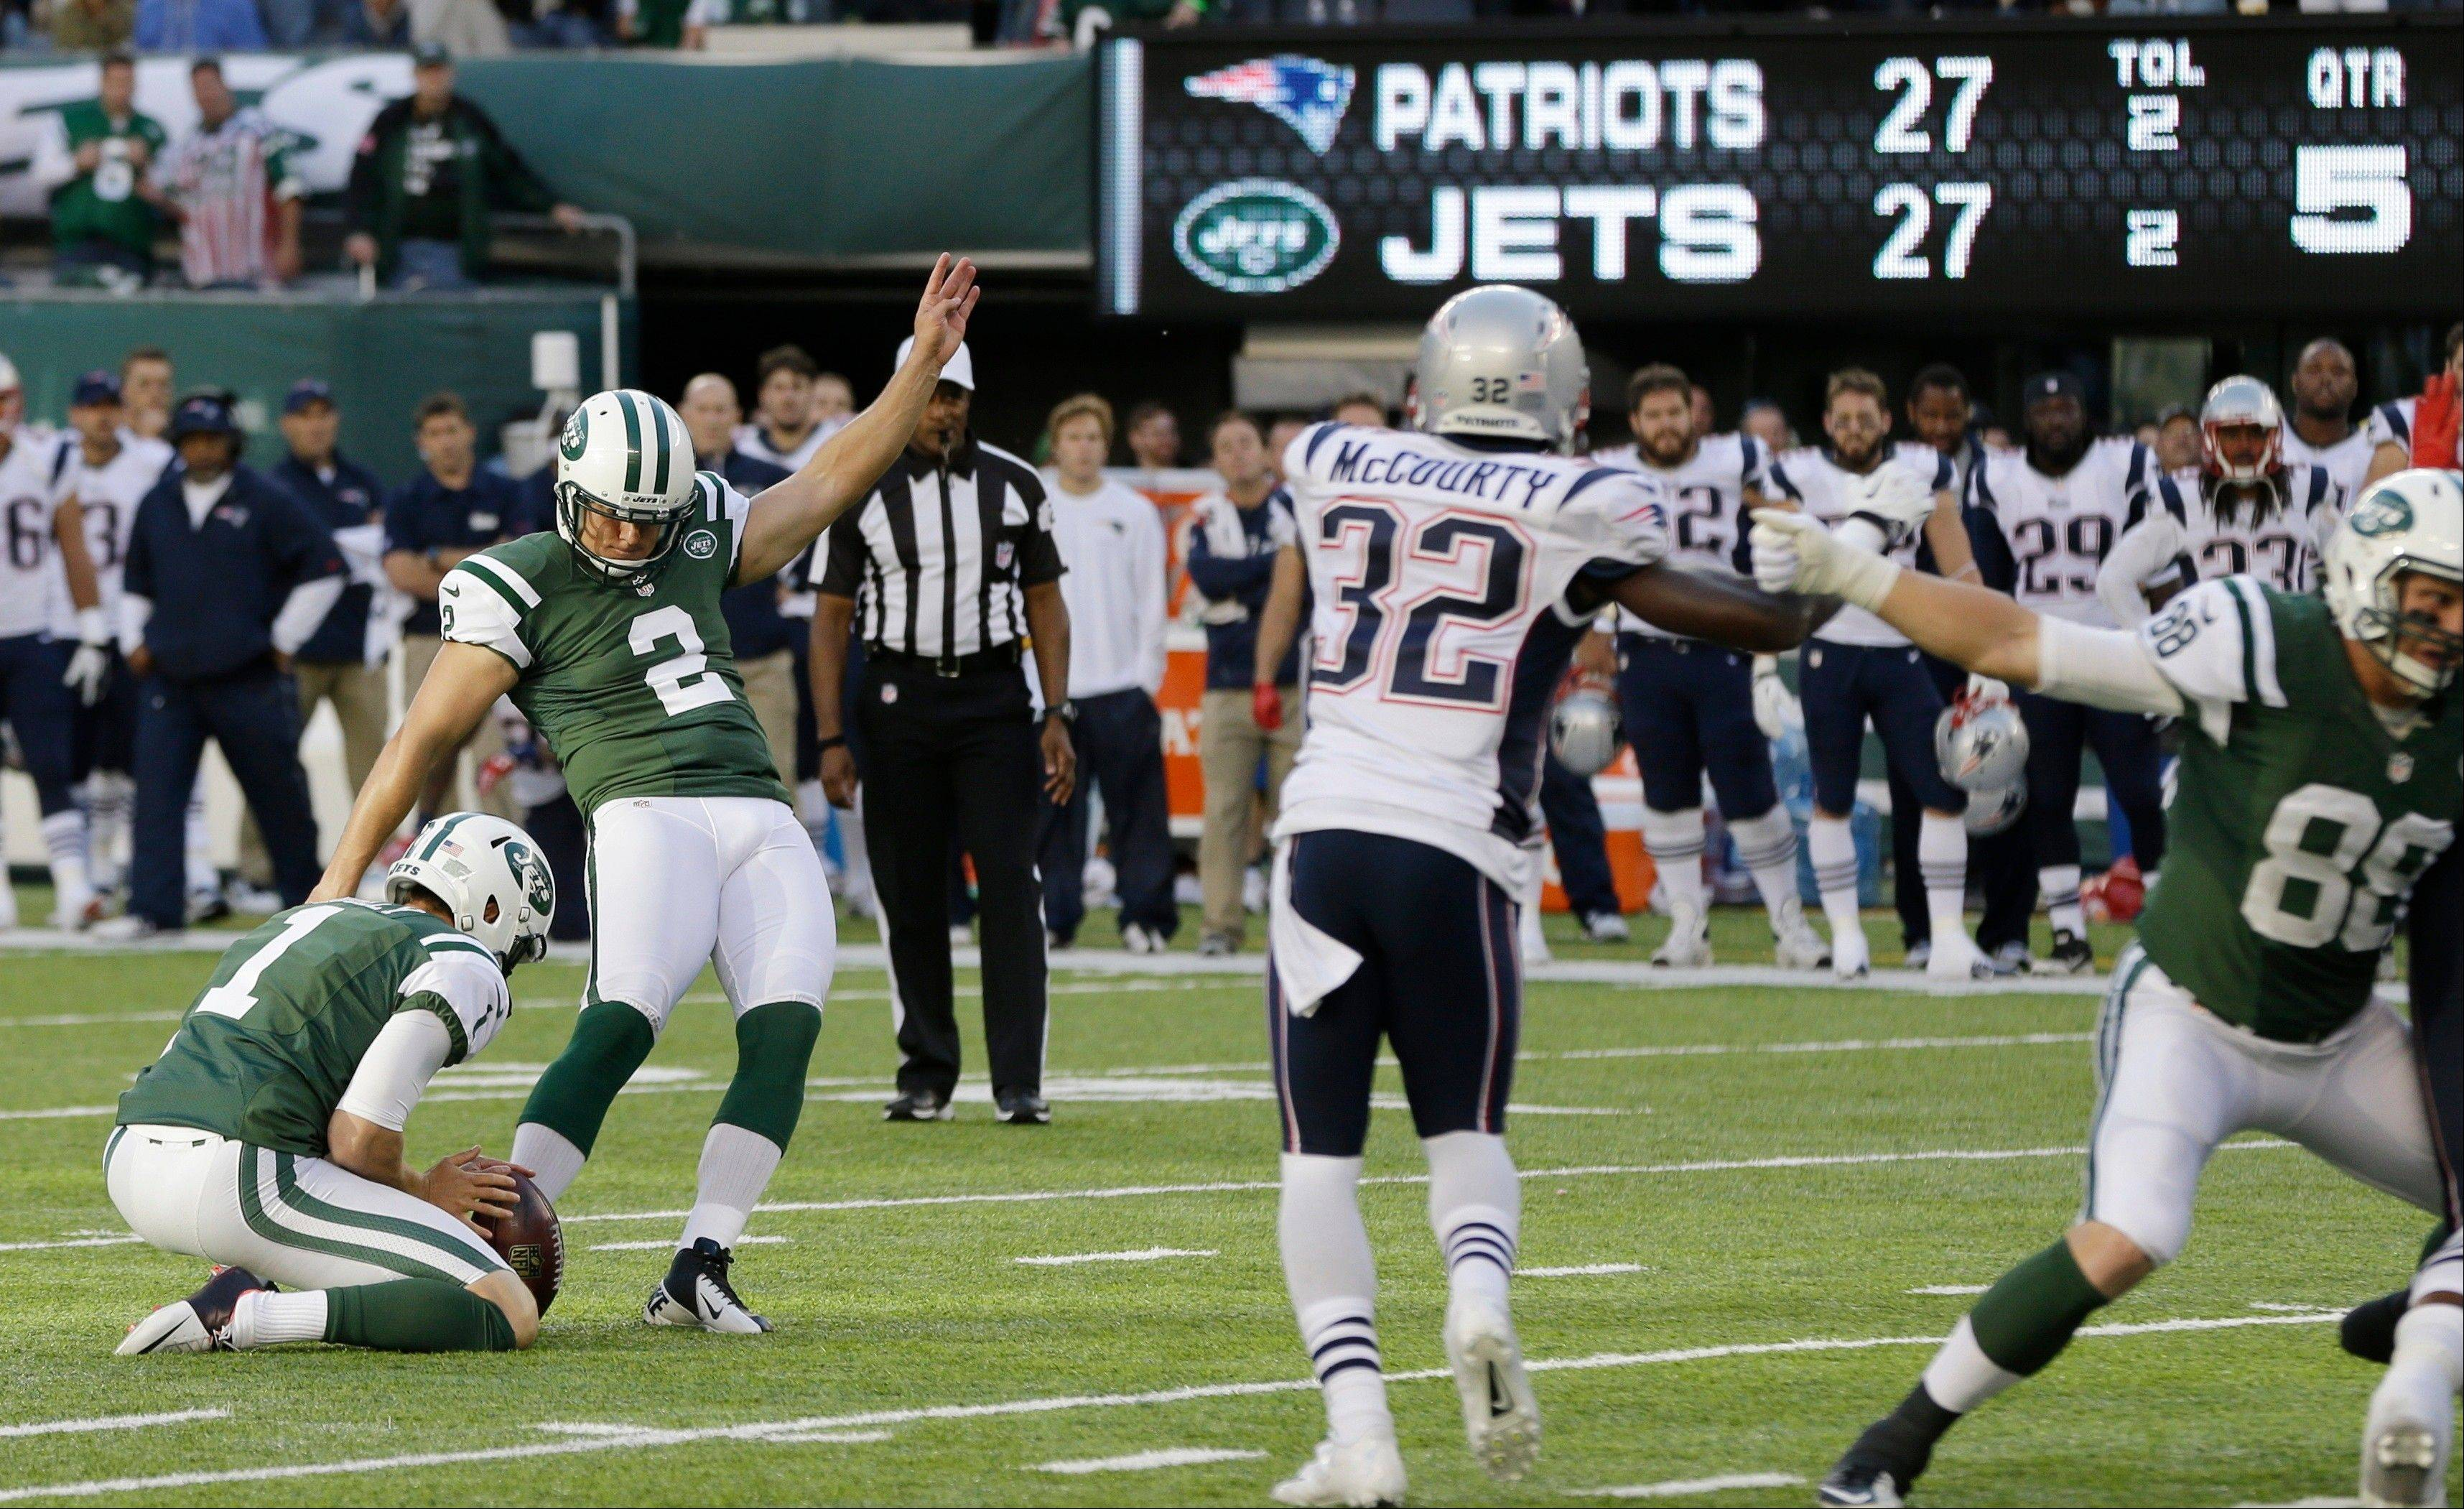 New York Jets kicker Nick Folk (2) kicks a field goal to win the game during overtime of an NFL football game against the New England Patriots Sunday, Oct. 20, 2013 in East Rutherford, N.J. The Jets won the game 30-27. The Patriots� Devin McCourty (32) is at center.